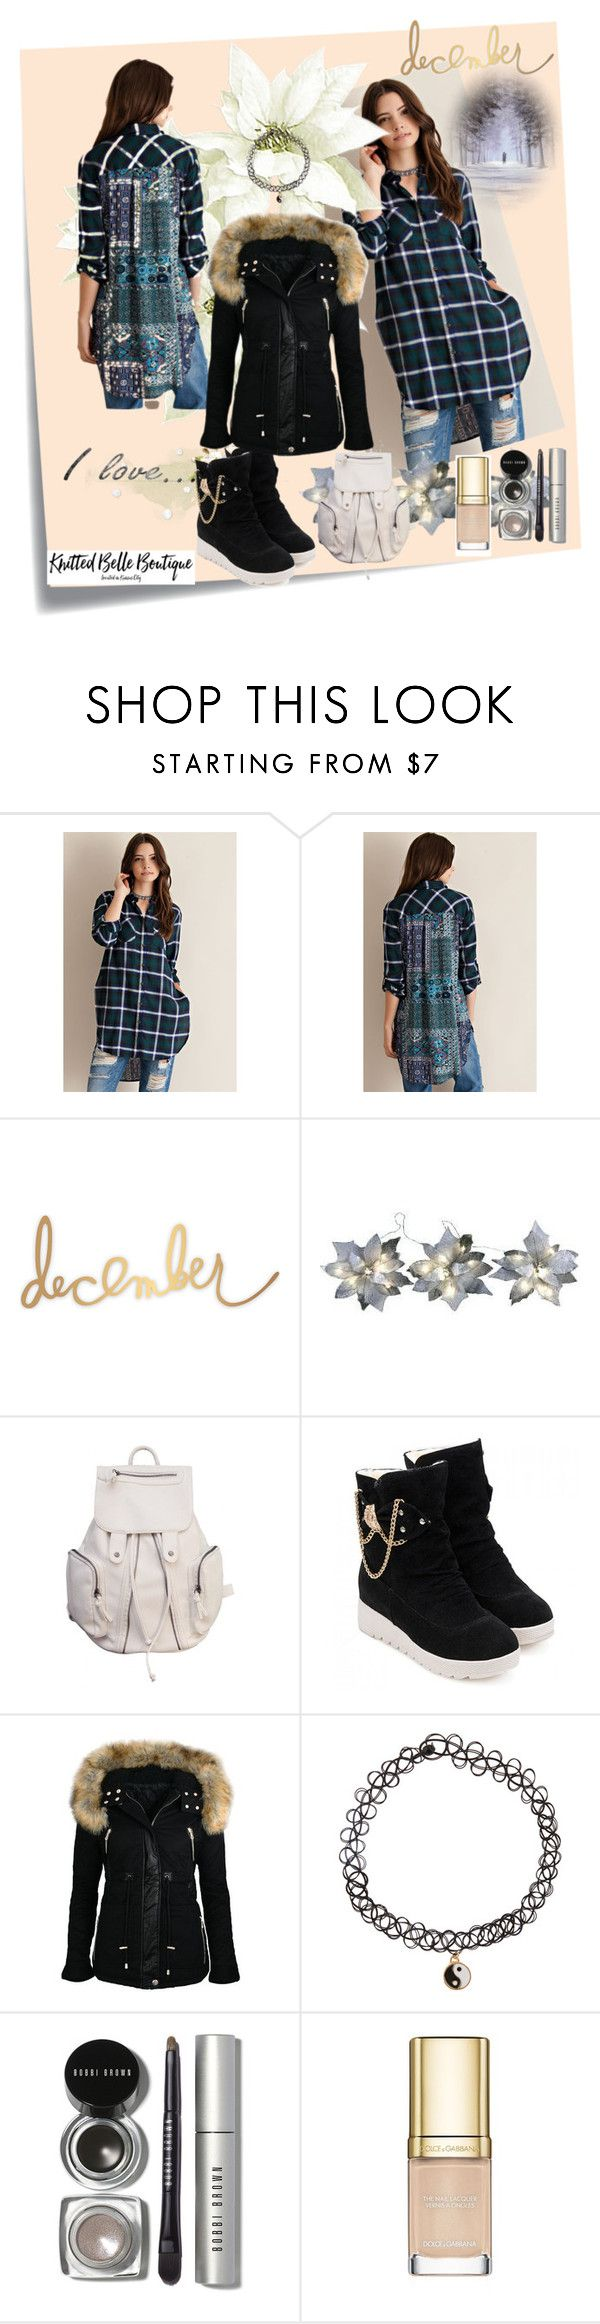 """""""Knitted Belle Boutique # 7"""" by zijadaahmetovic ❤ liked on Polyvore featuring Post-It, Accessorize, Bobbi Brown Cosmetics and Dolce&Gabbana"""